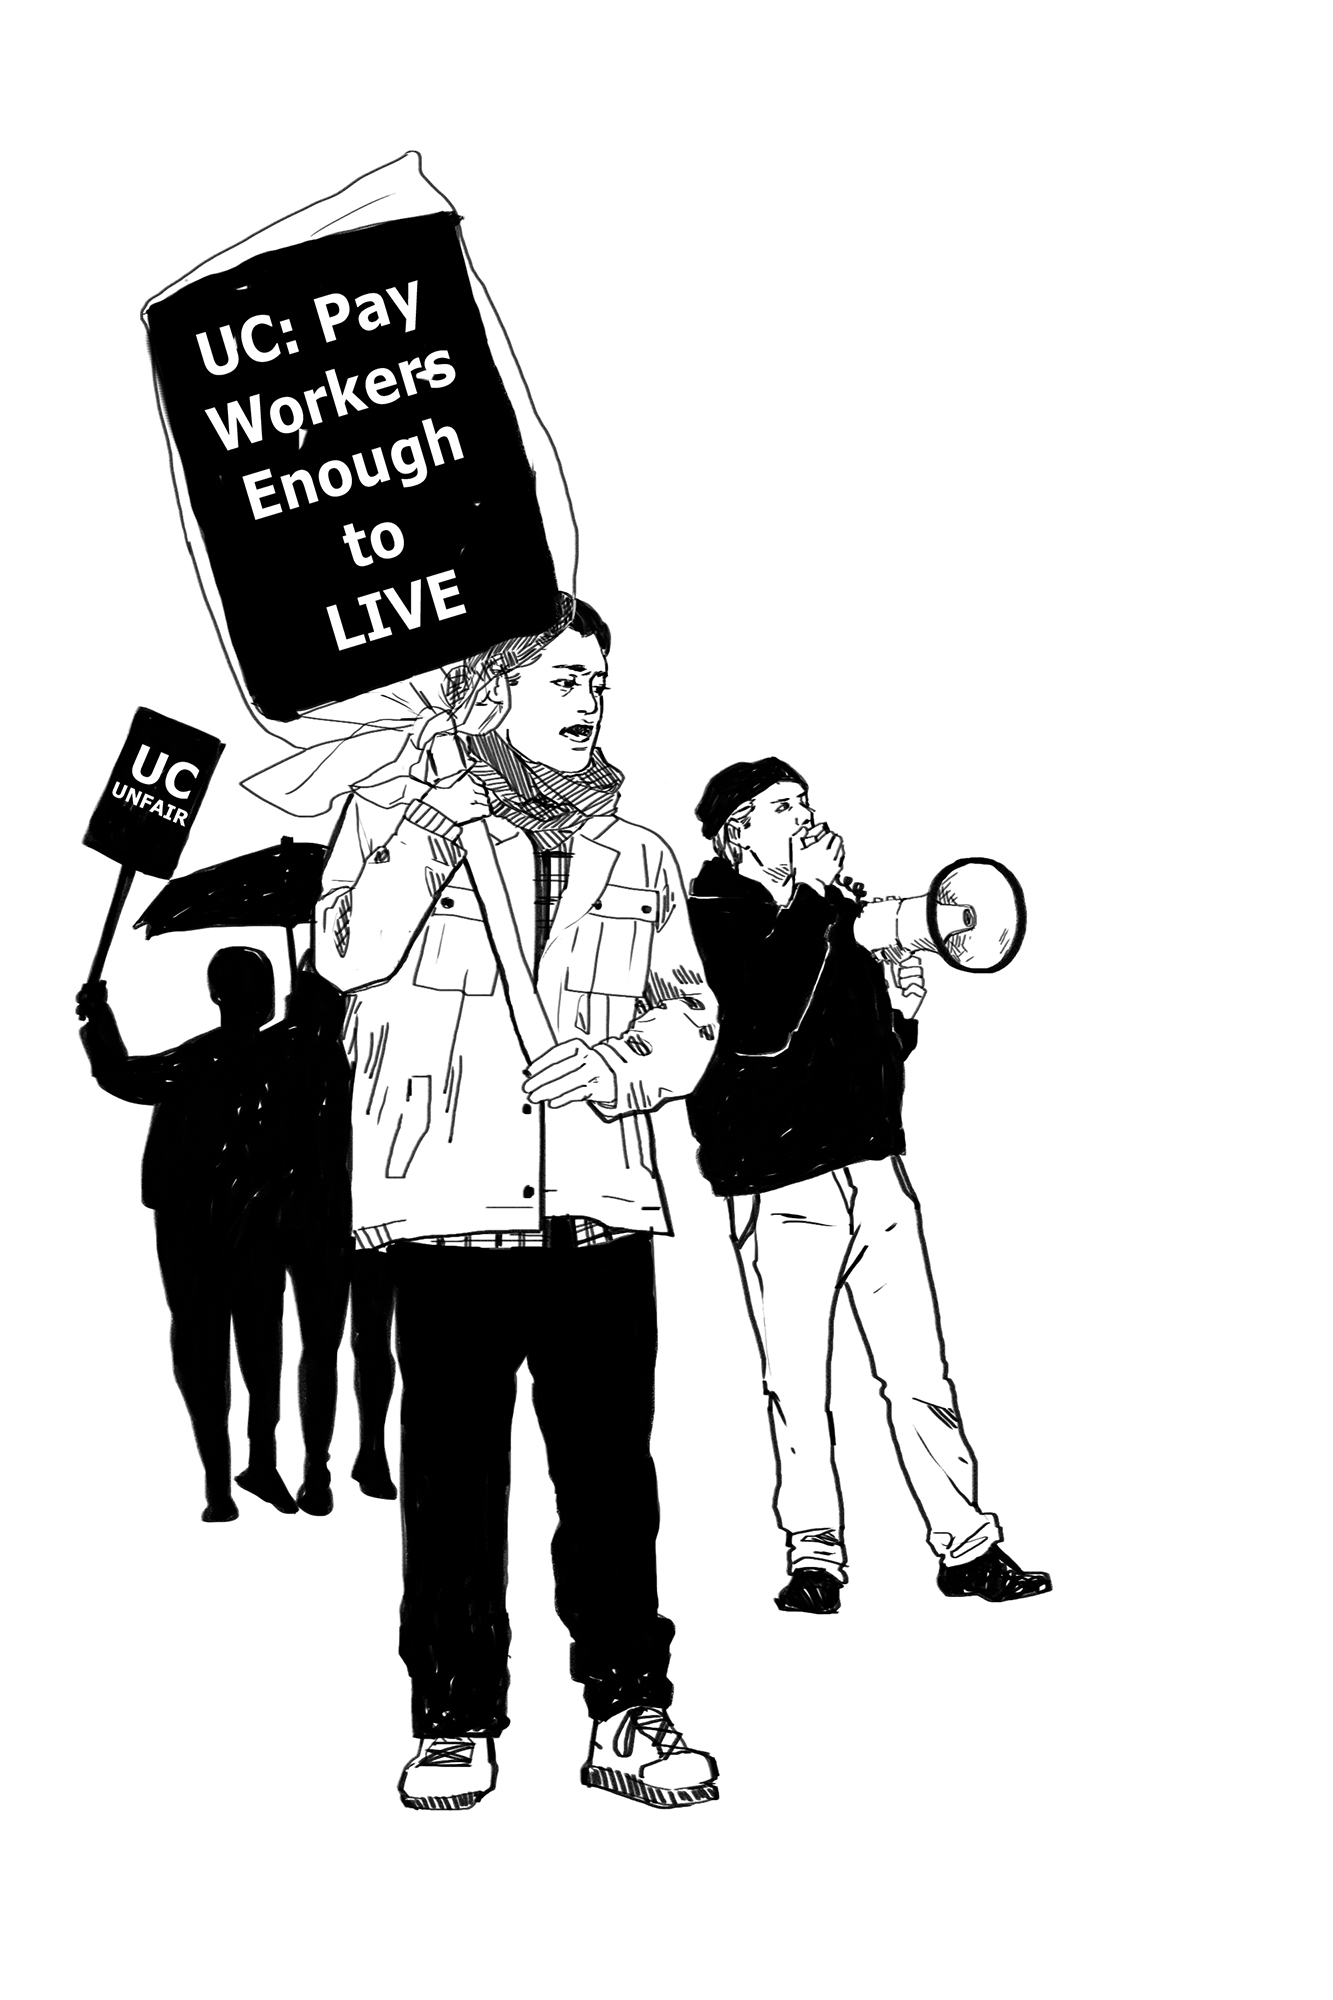 UC's Income Inequality Disregards Workers